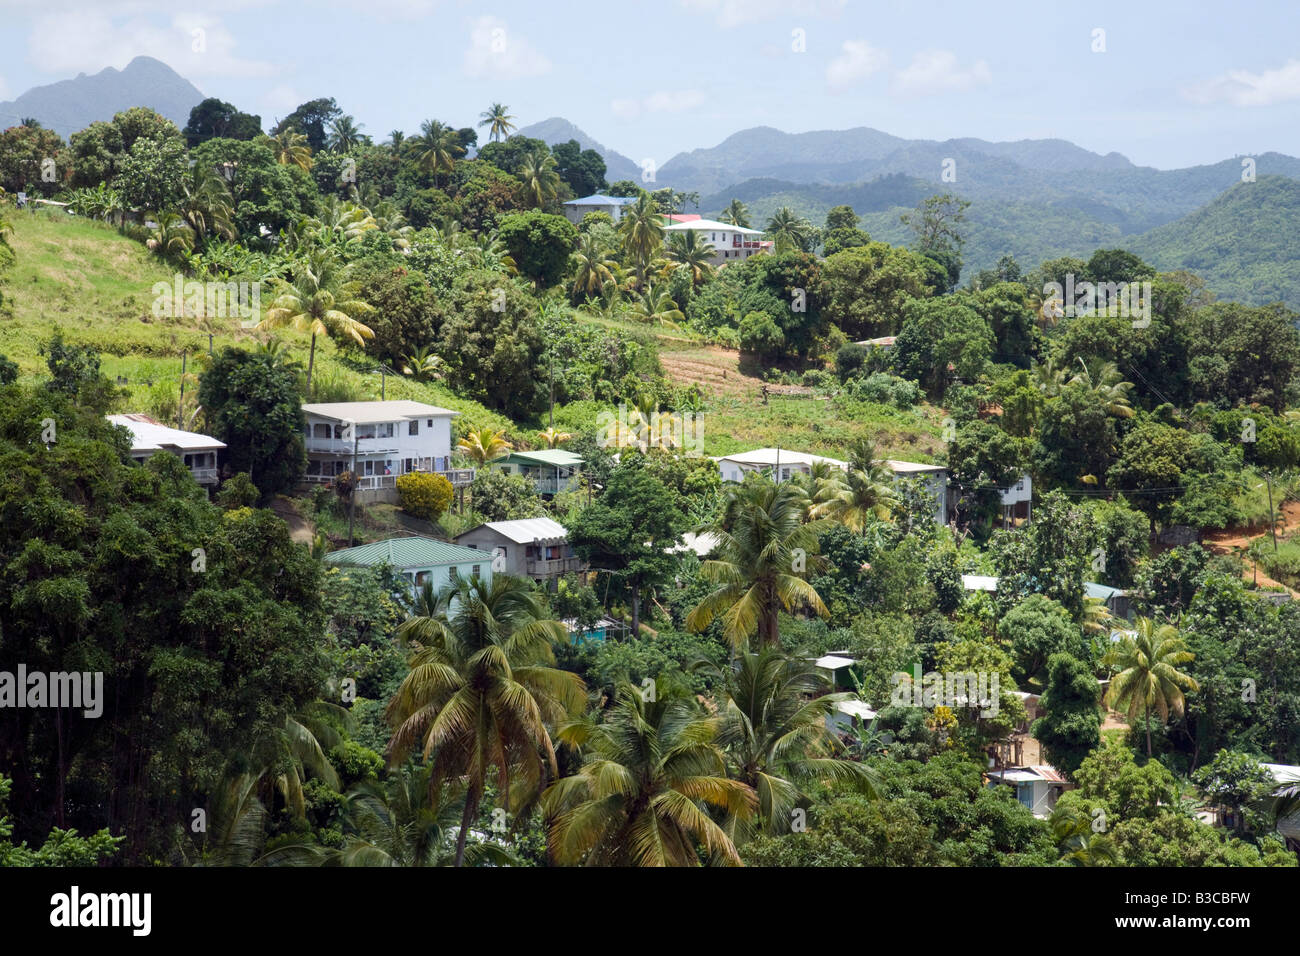 Housing on the edges of the rainforest, St Lucia, 'West Indies' - Stock Image